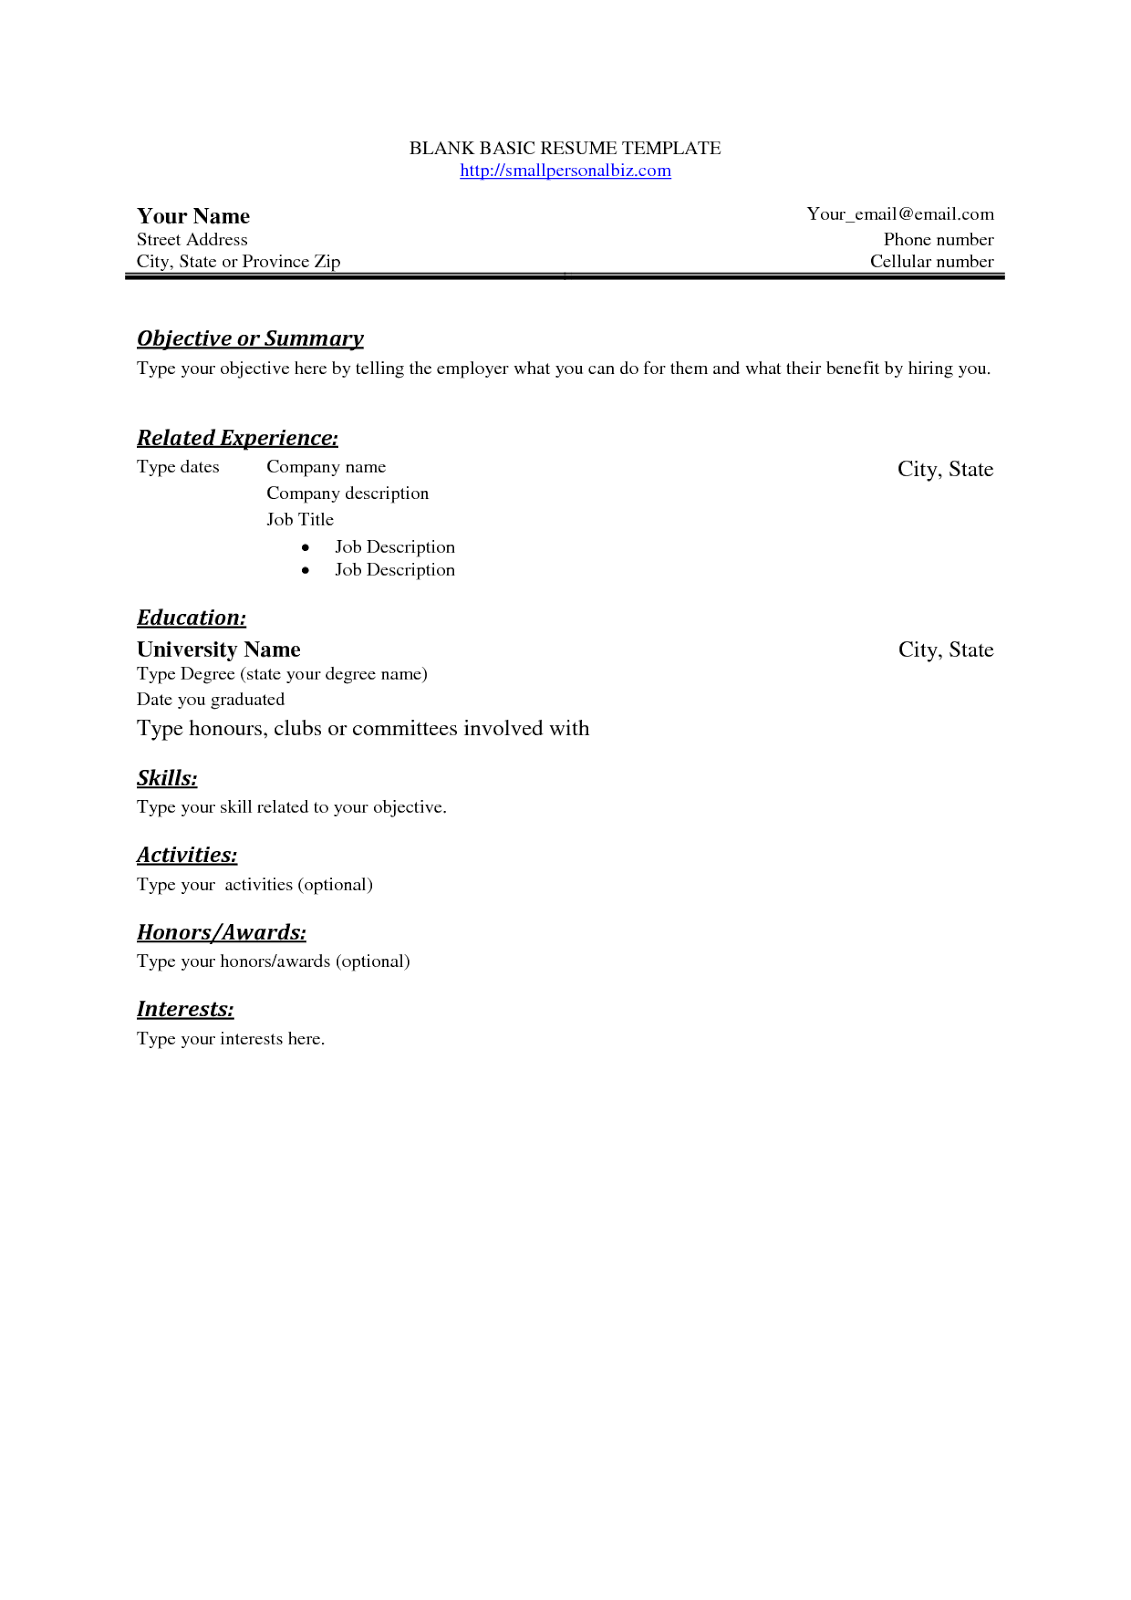 free resume samples pdf blank resume with photo empty resume format blank sample pdf free template